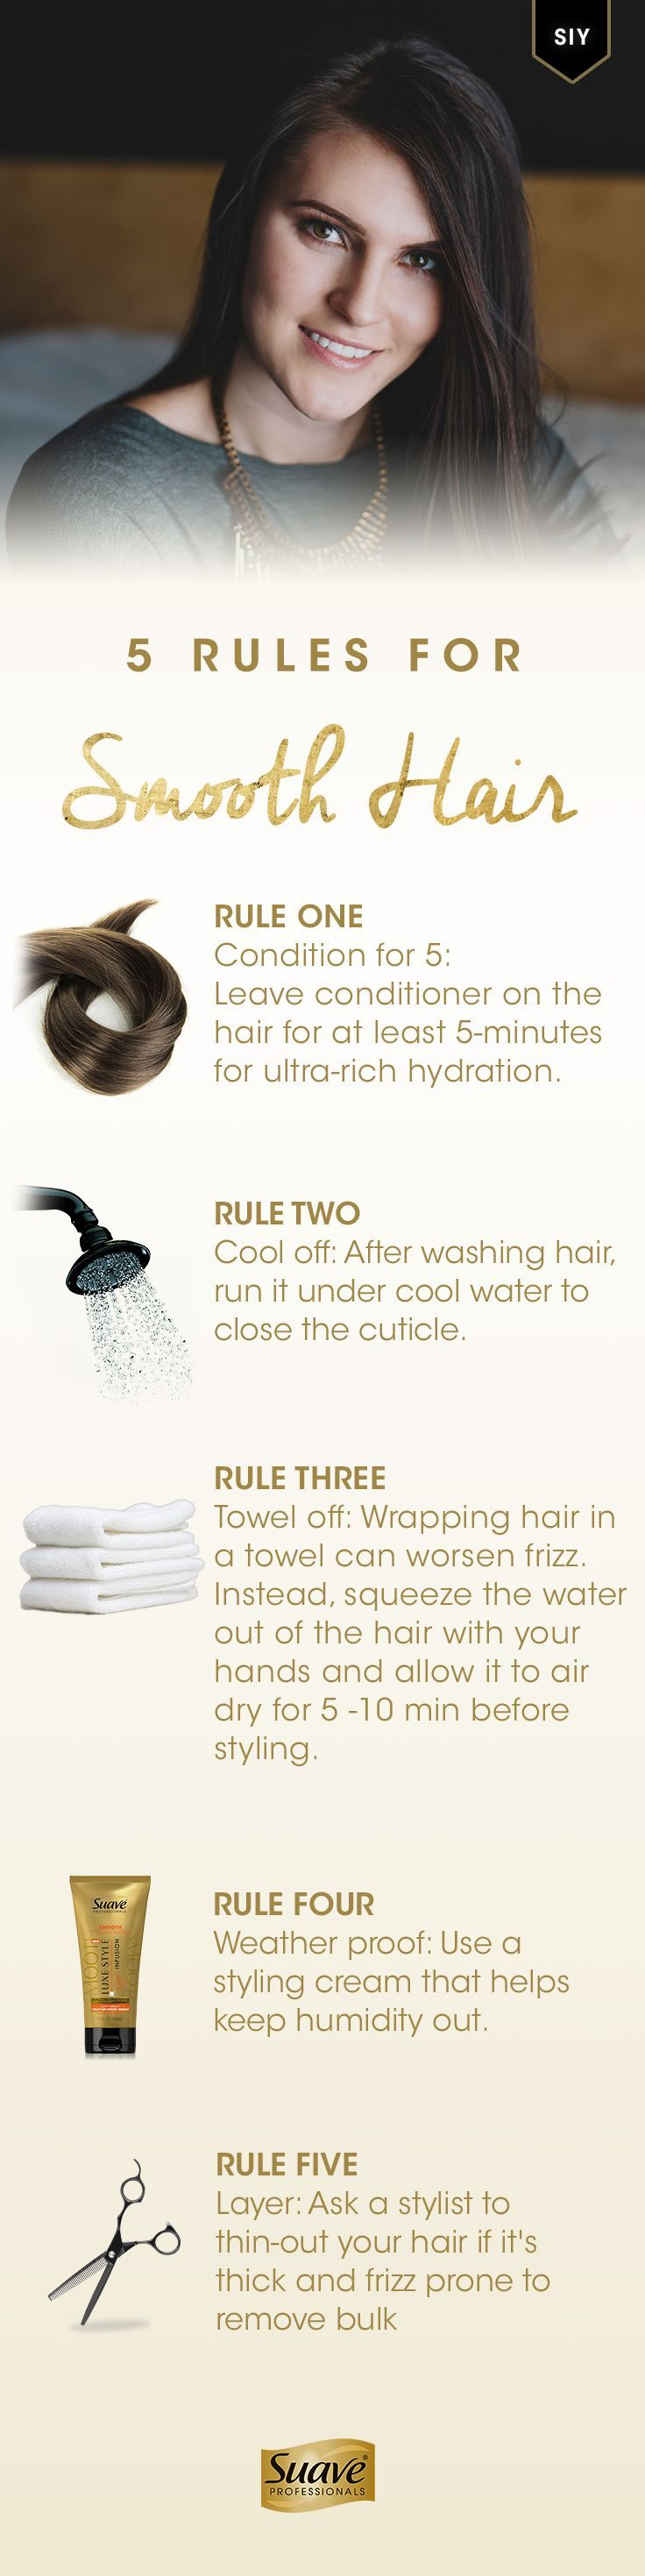 5 Rules for Smooth Hair